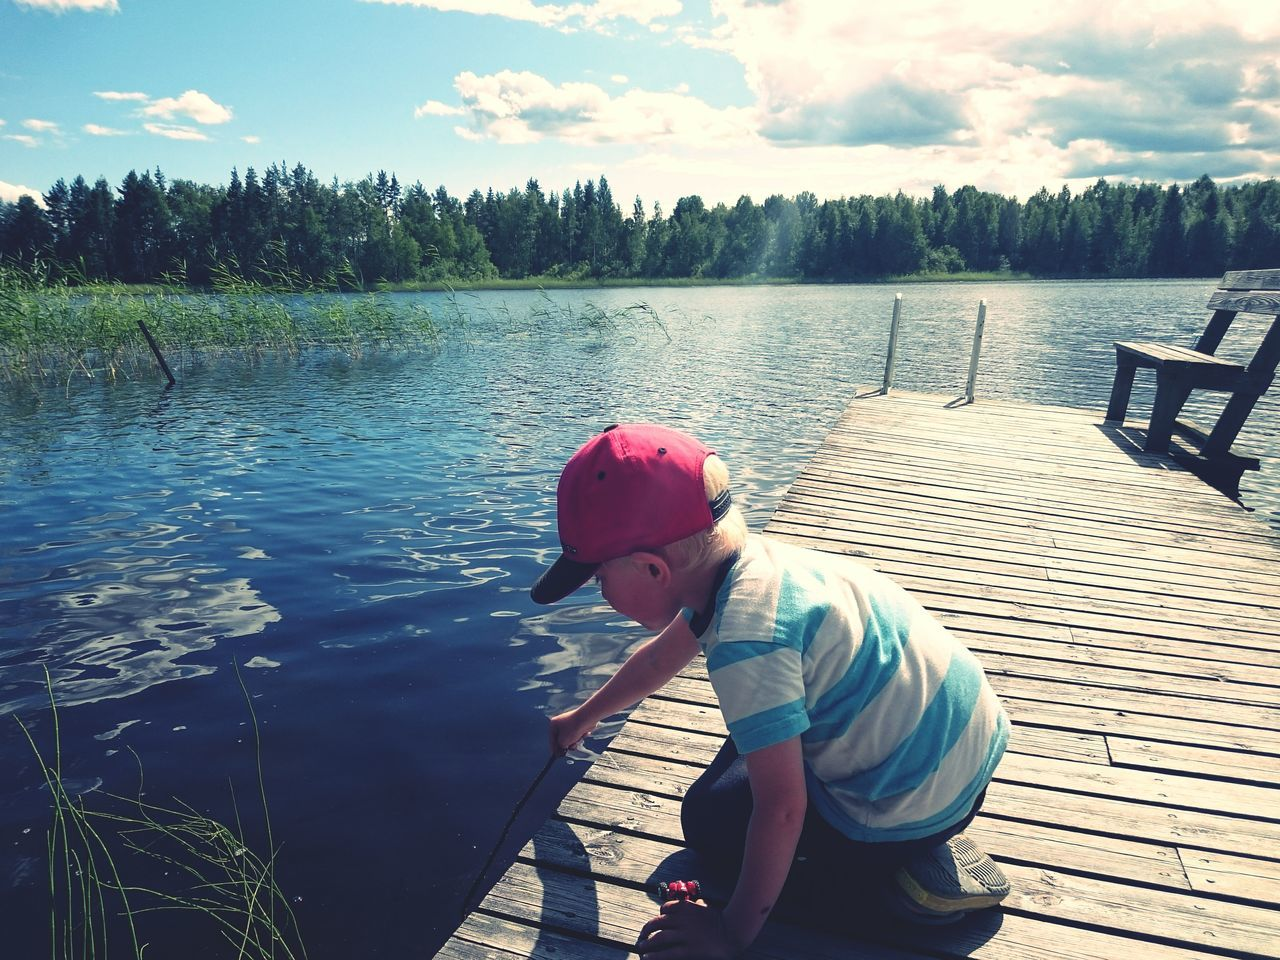 Capturing Freedom Enjoying The Sun Relaxing Nature Beautiful Finland Lake View Kids By The Lake